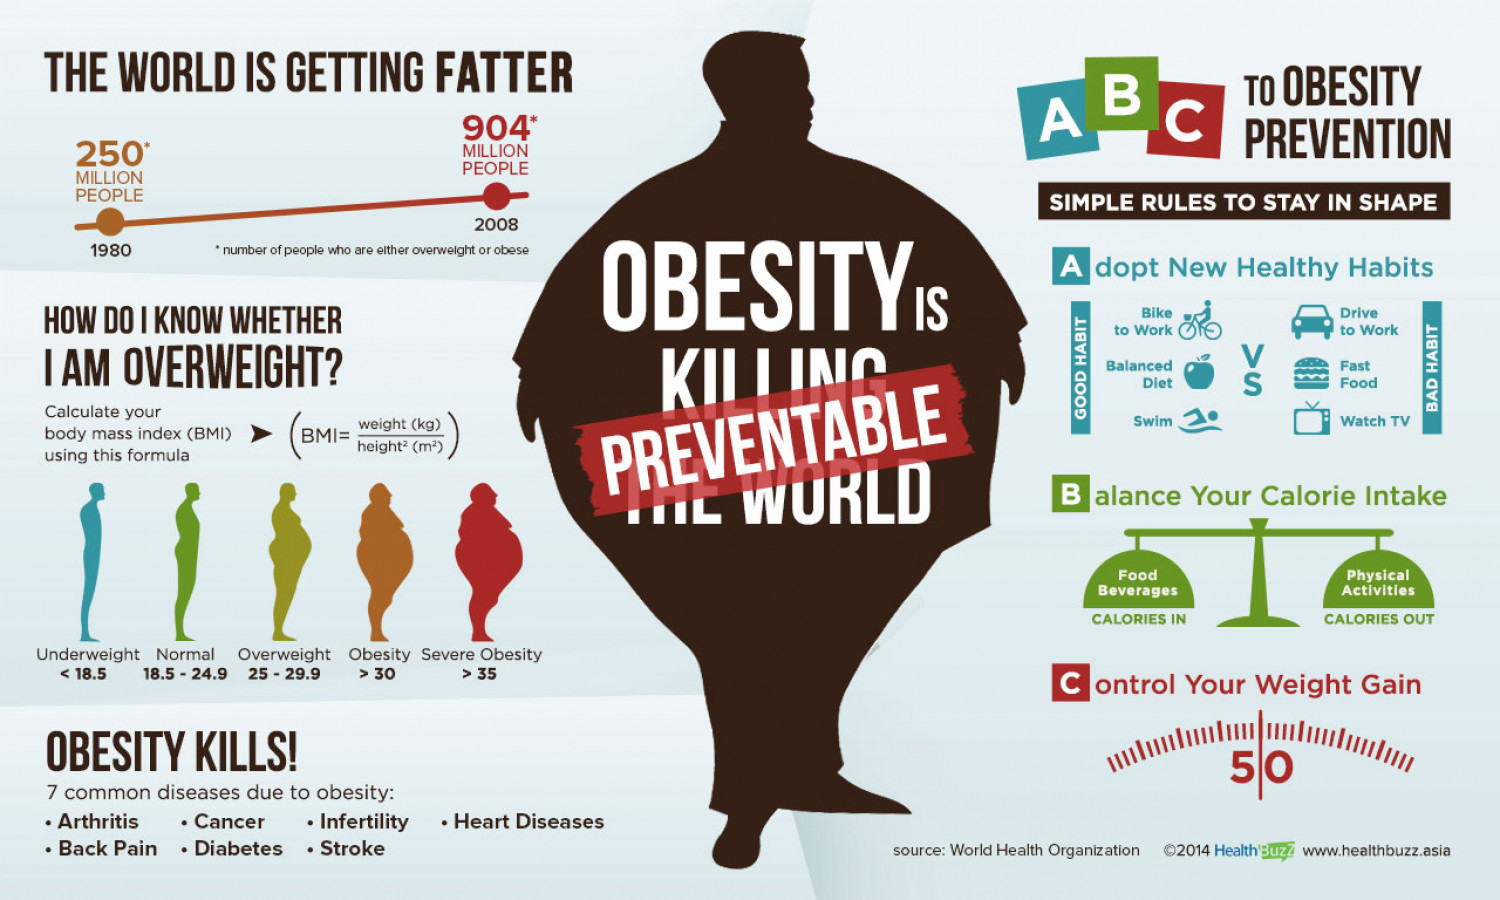 ABC to Obesity Prevention Infographic